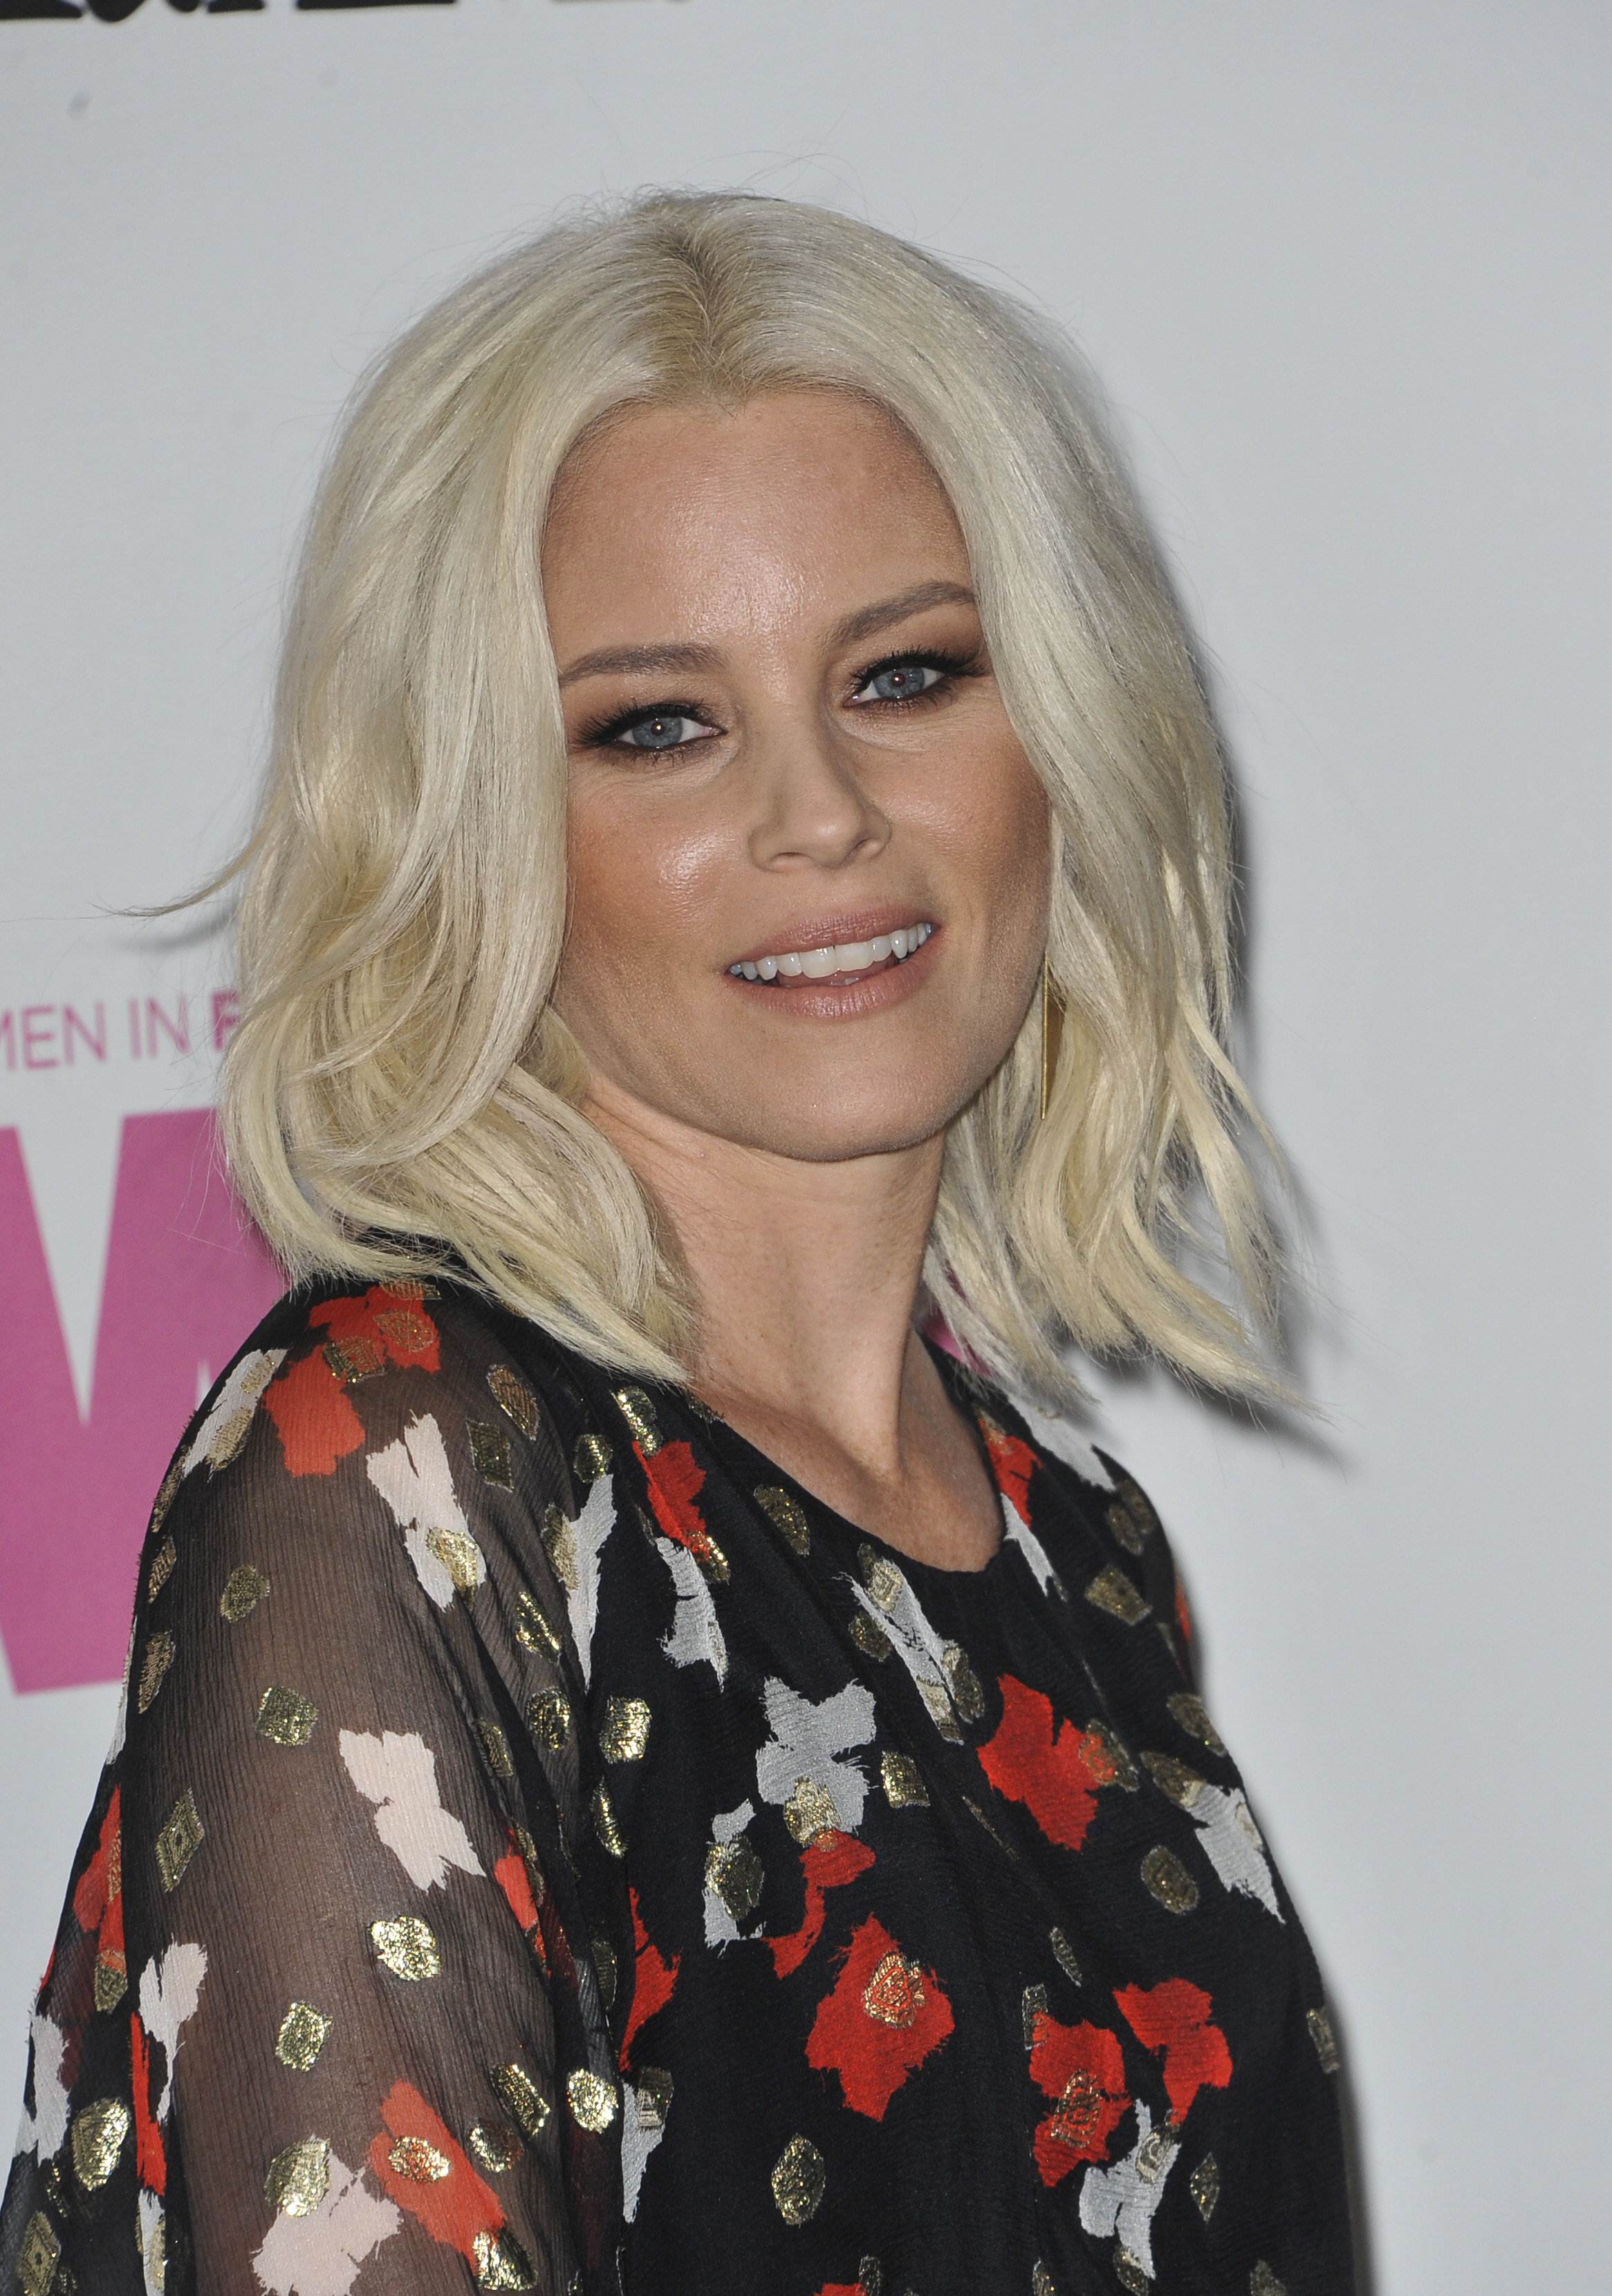 Elizabeth Banks attends the Women In Film 2017 Crystal and Lucy Awards in Los Angeles on July 14, 2017.